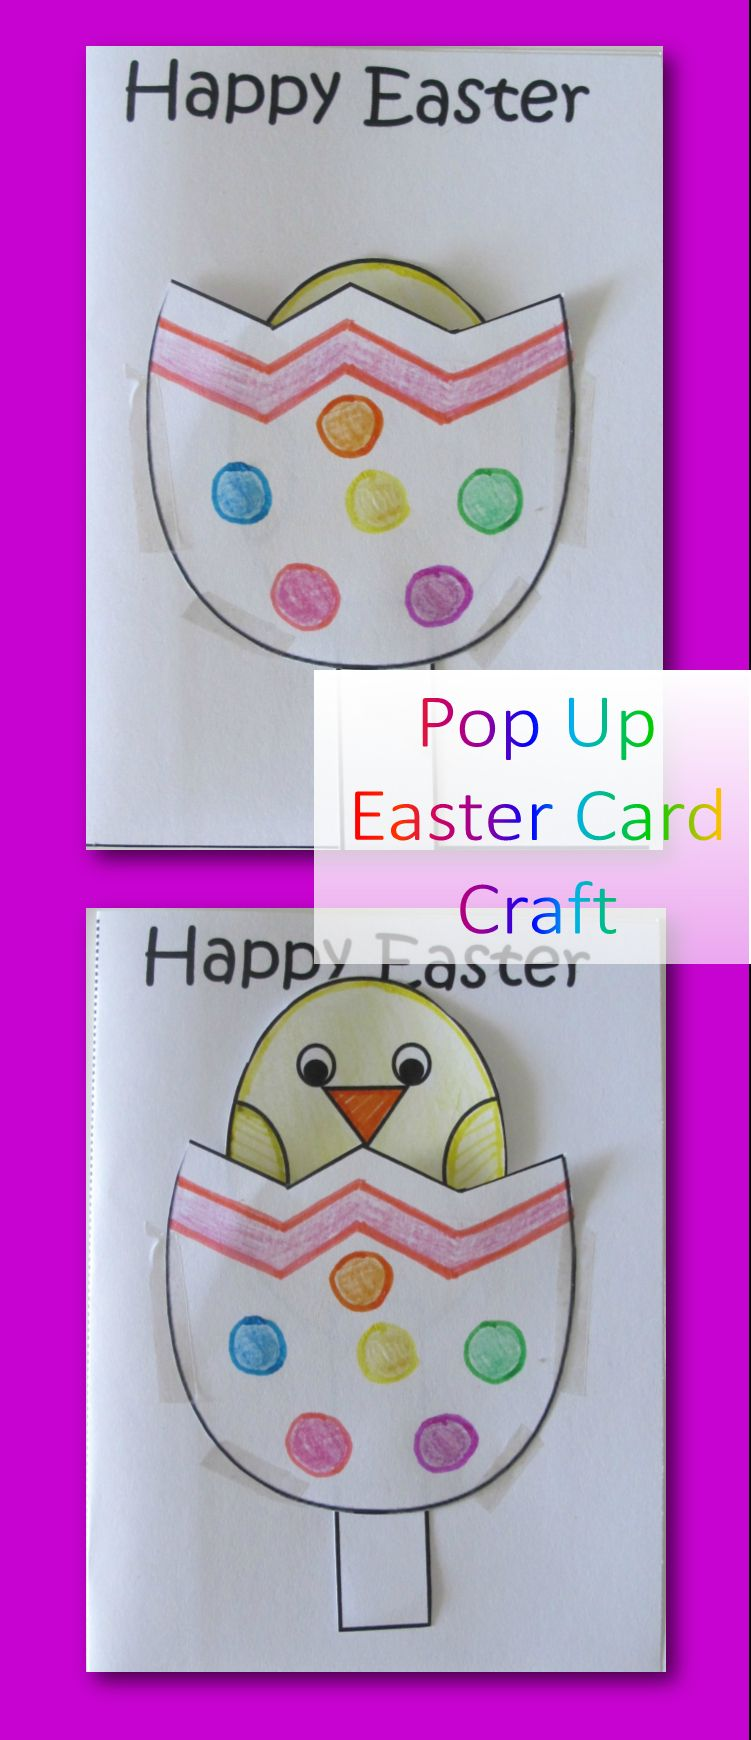 Pop Up Easter Cards Are So Cute And Really Easy To Make With With Easter Card Template Ks2 Best Template Ideas This Moment